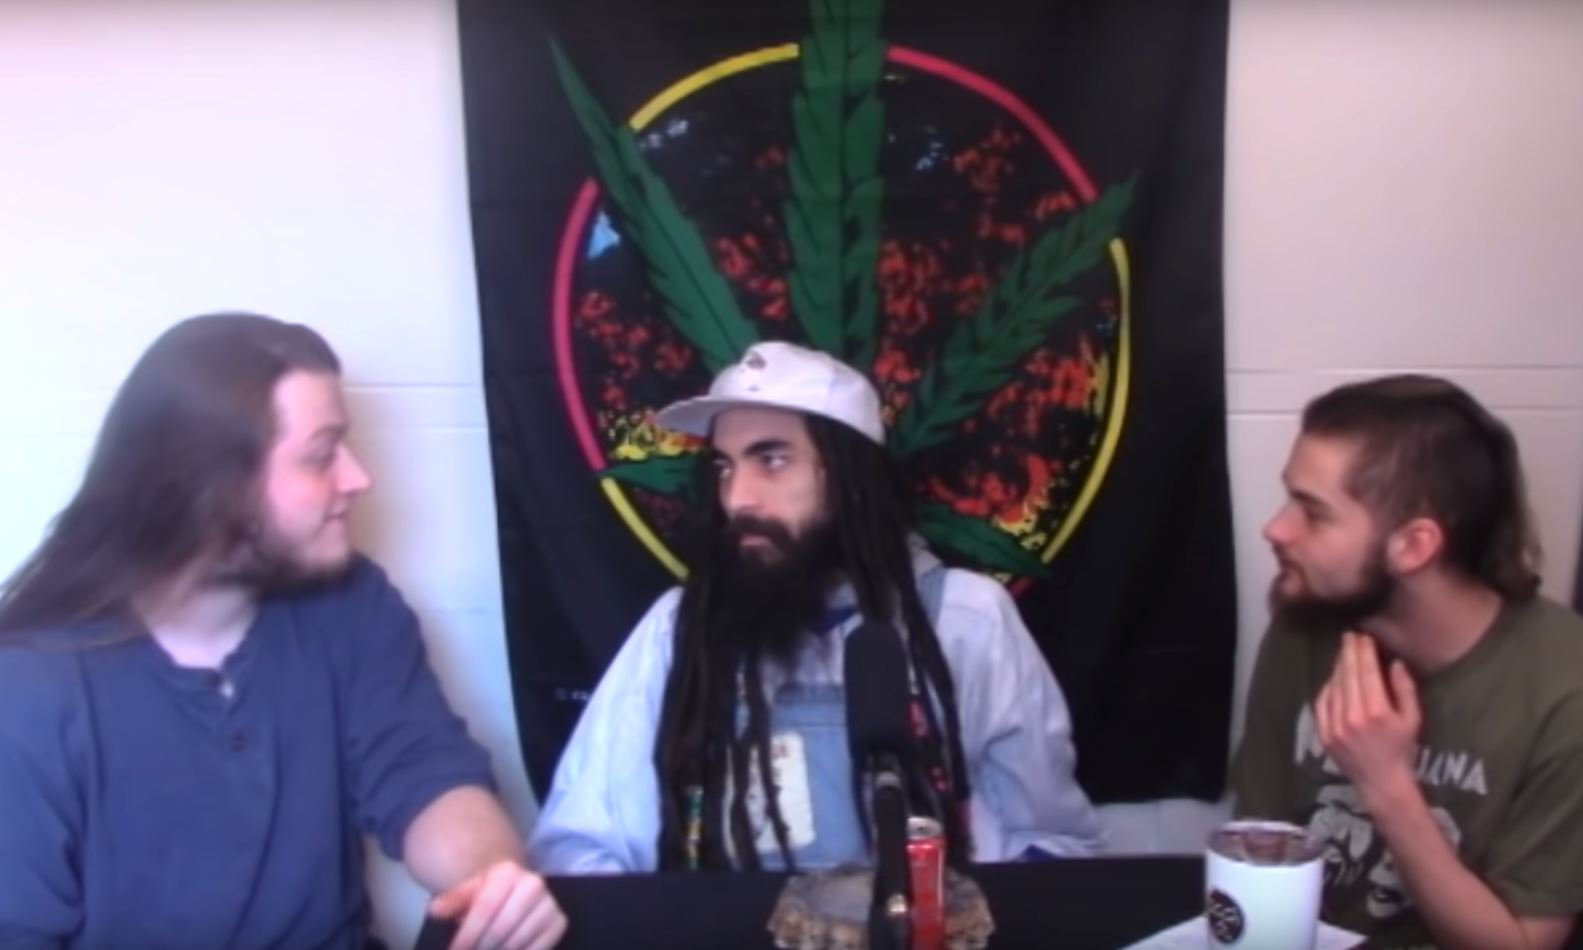 Picture: YouTube/ T'es-Tu High White comedian refused show because his dreadlocks are' cultural appropriation'